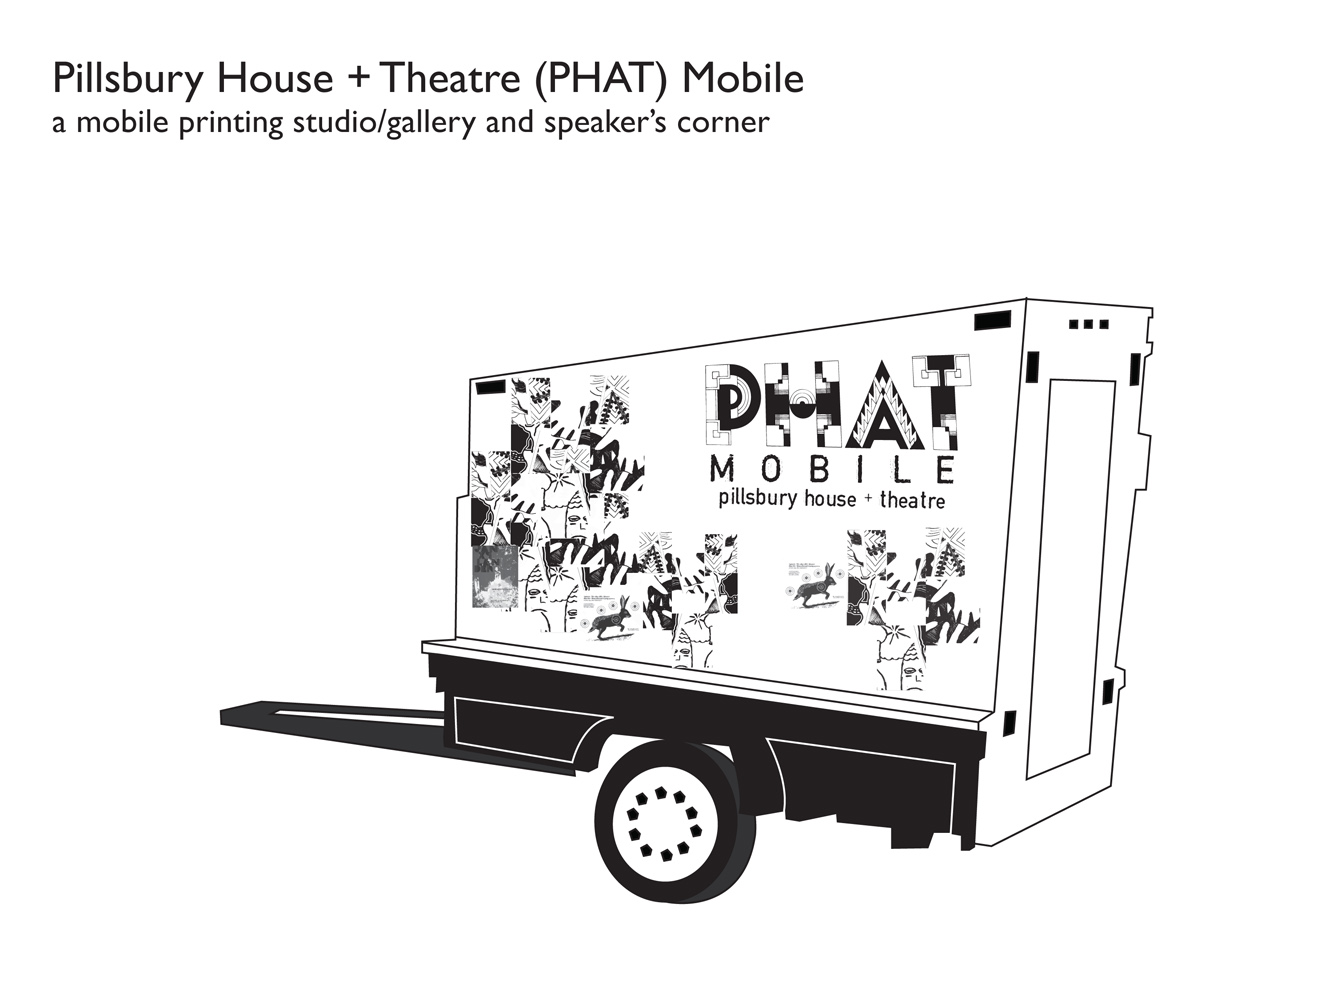 PHAT Mobilepotential trailer sketch